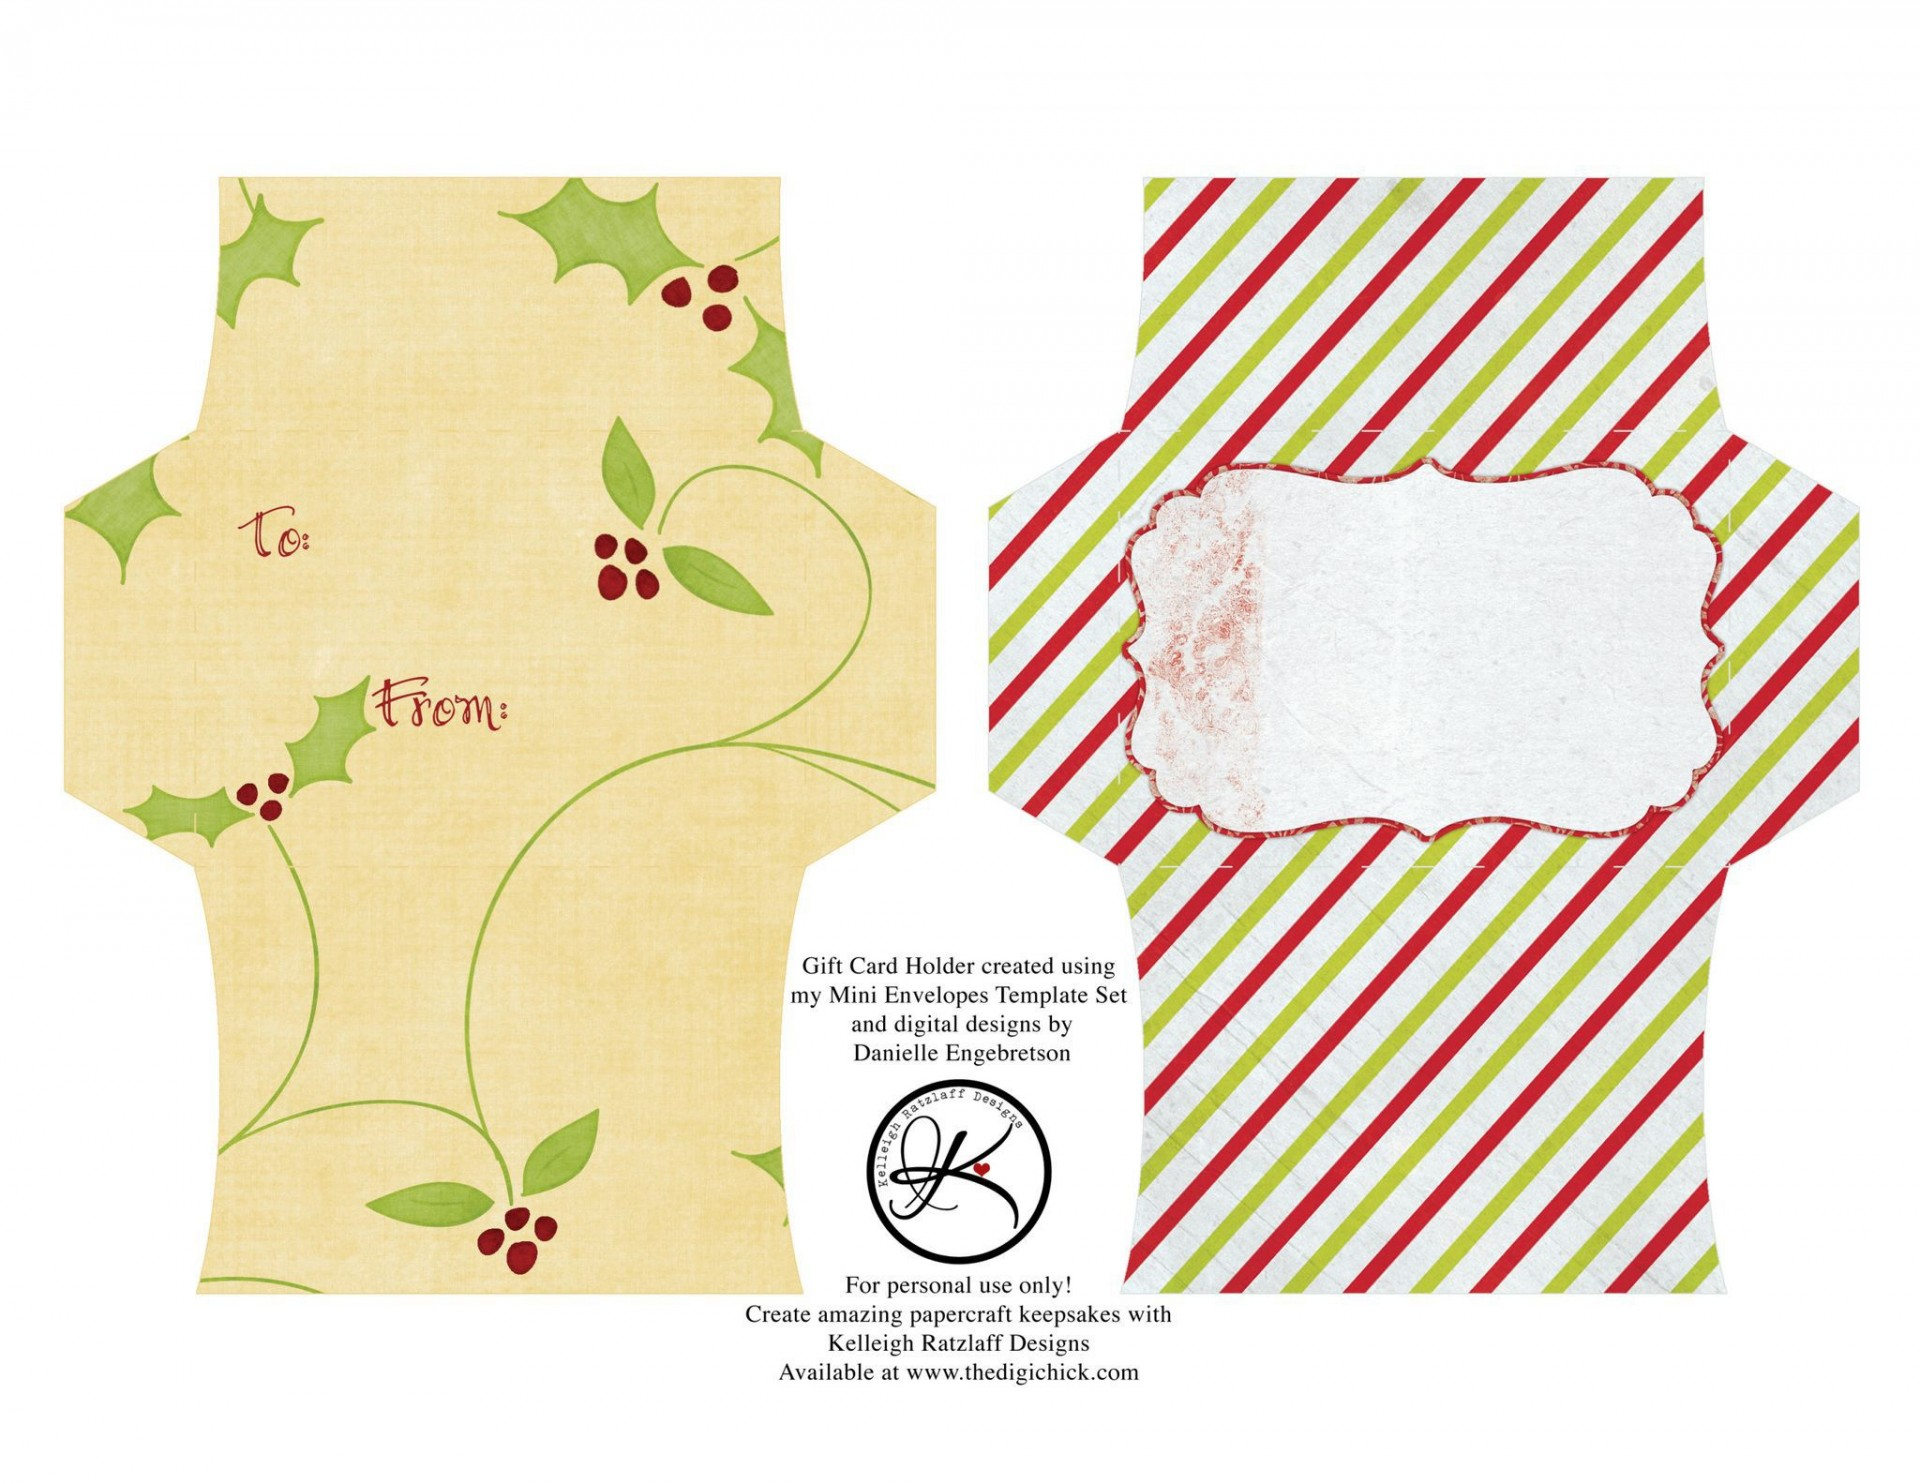 004 Outstanding Gift Card Envelope Template Design  Templates Voucher Diy Free Printable1920